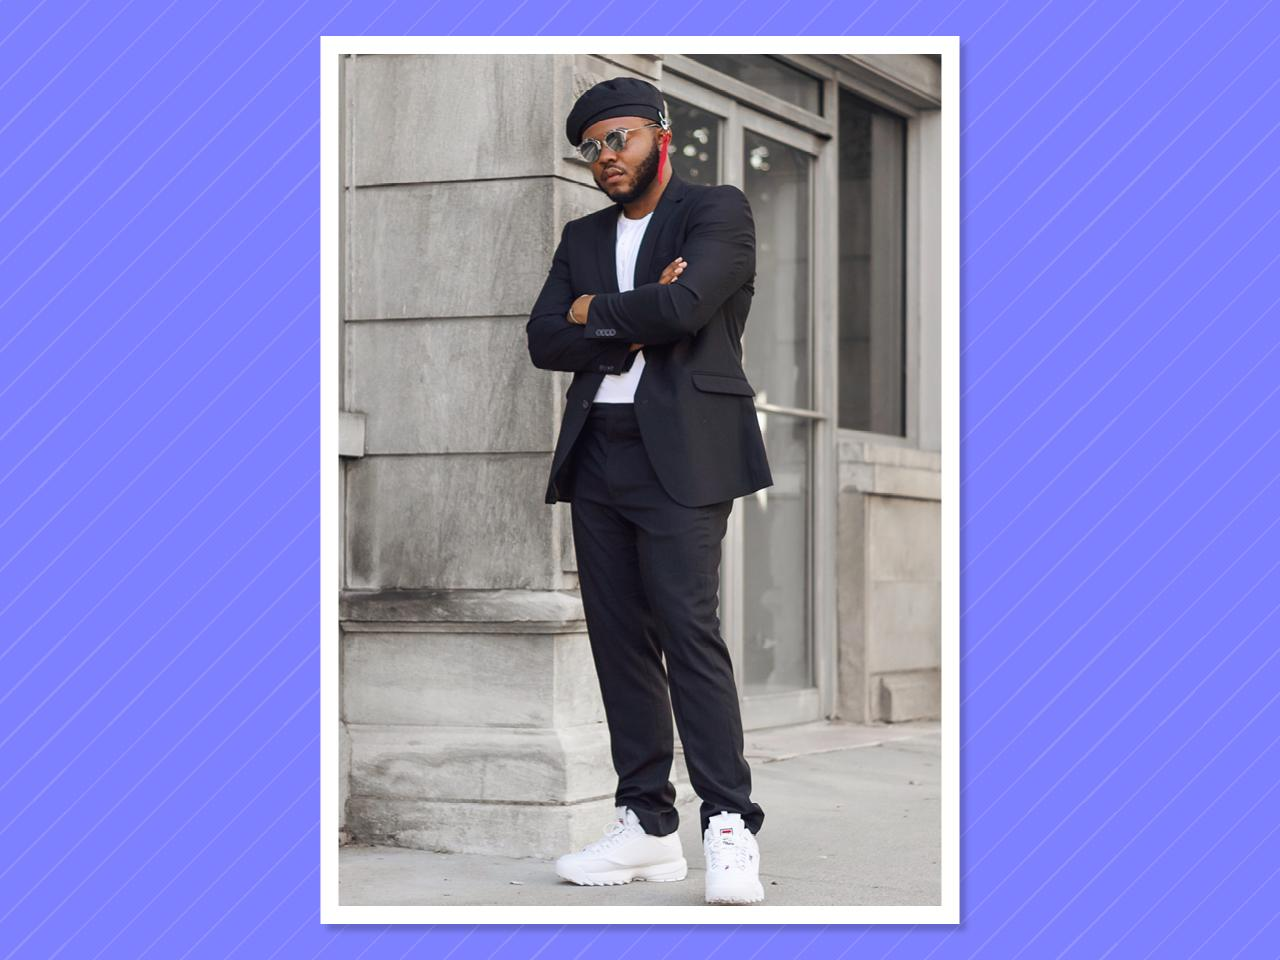 "<p></p><p><a rel=""nofollow"" href=""https://www.instagram.com/francisleebaker4/?hl=en"">Baker</a> has a refined sense of style and overall swag that makes you feel as though you are scrolling through a superchic <em>GQ</em>-curated big-and-tall feed. (Photo: Courtesy of Francis Baker) </p><p></p>"